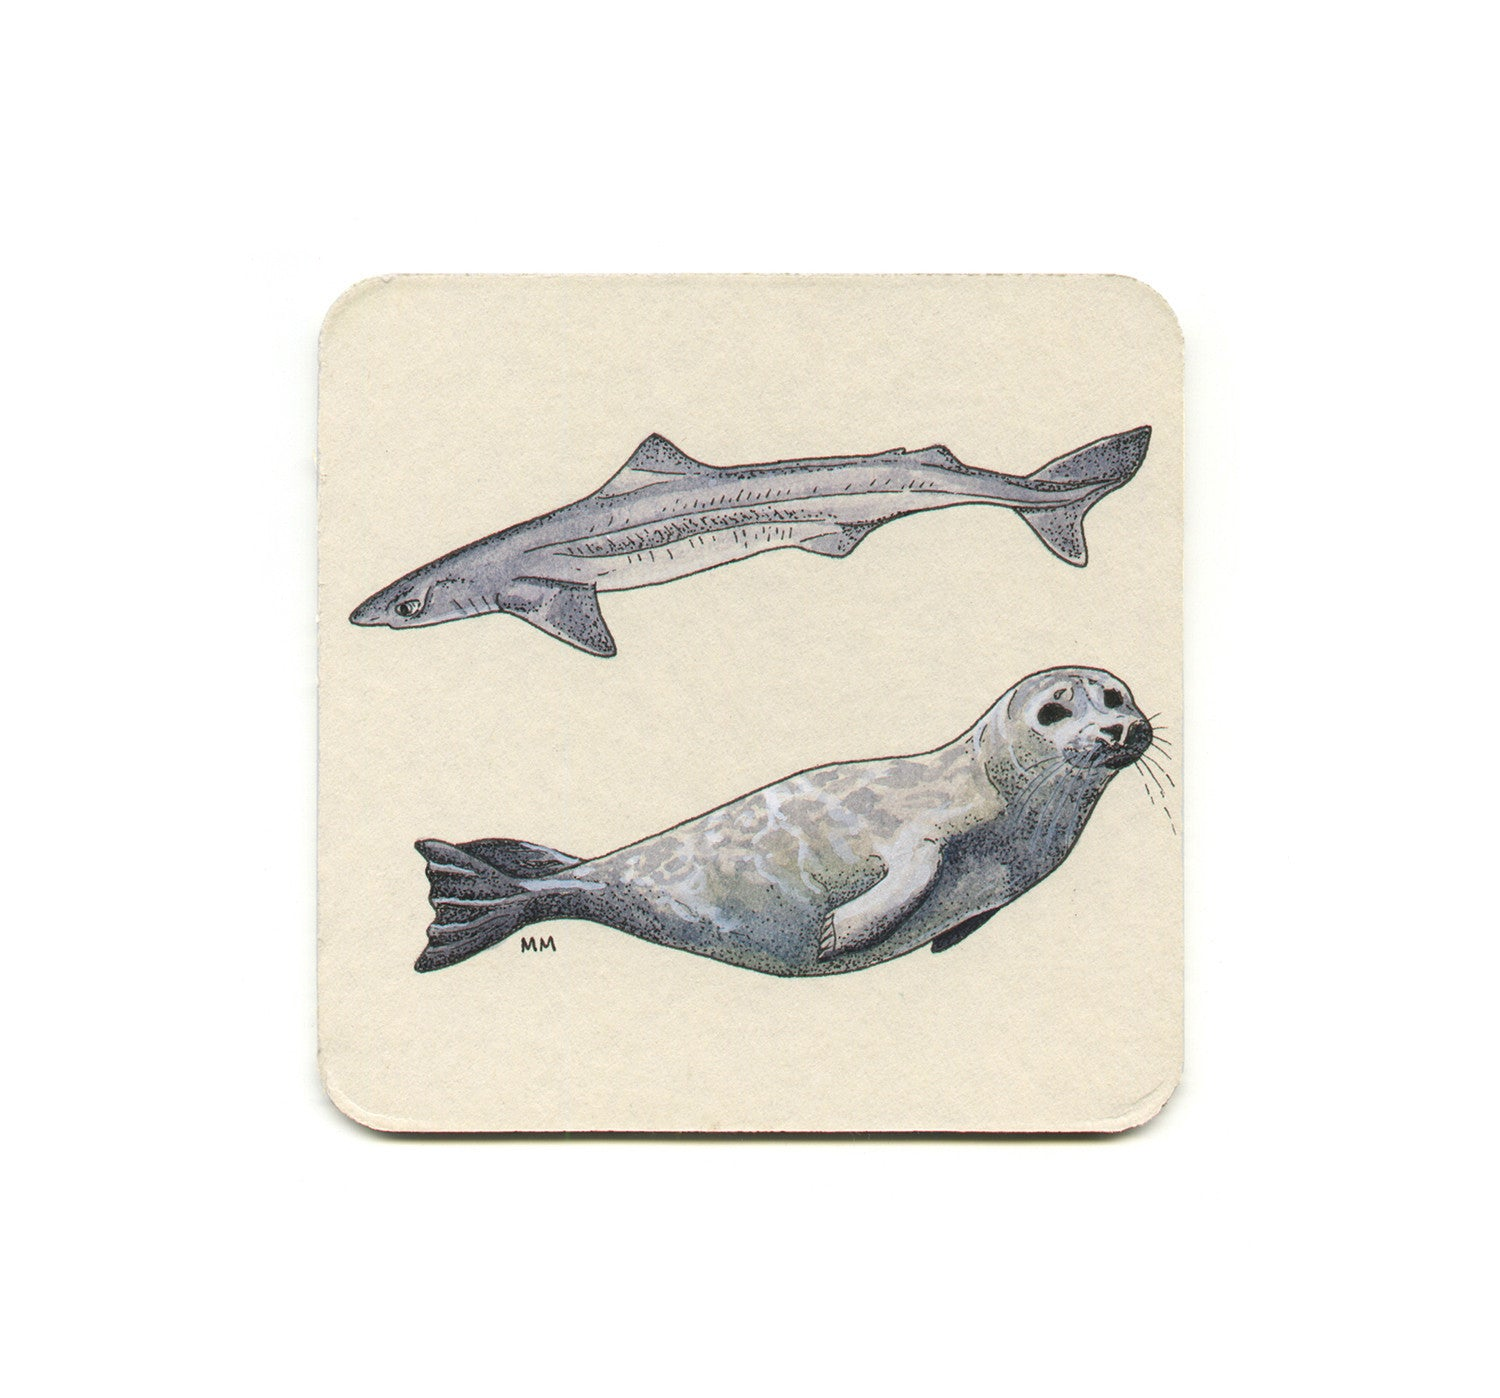 Madison Erin Mayfield - Spiny Dogfish & Pacific Harbor Seal Coaster